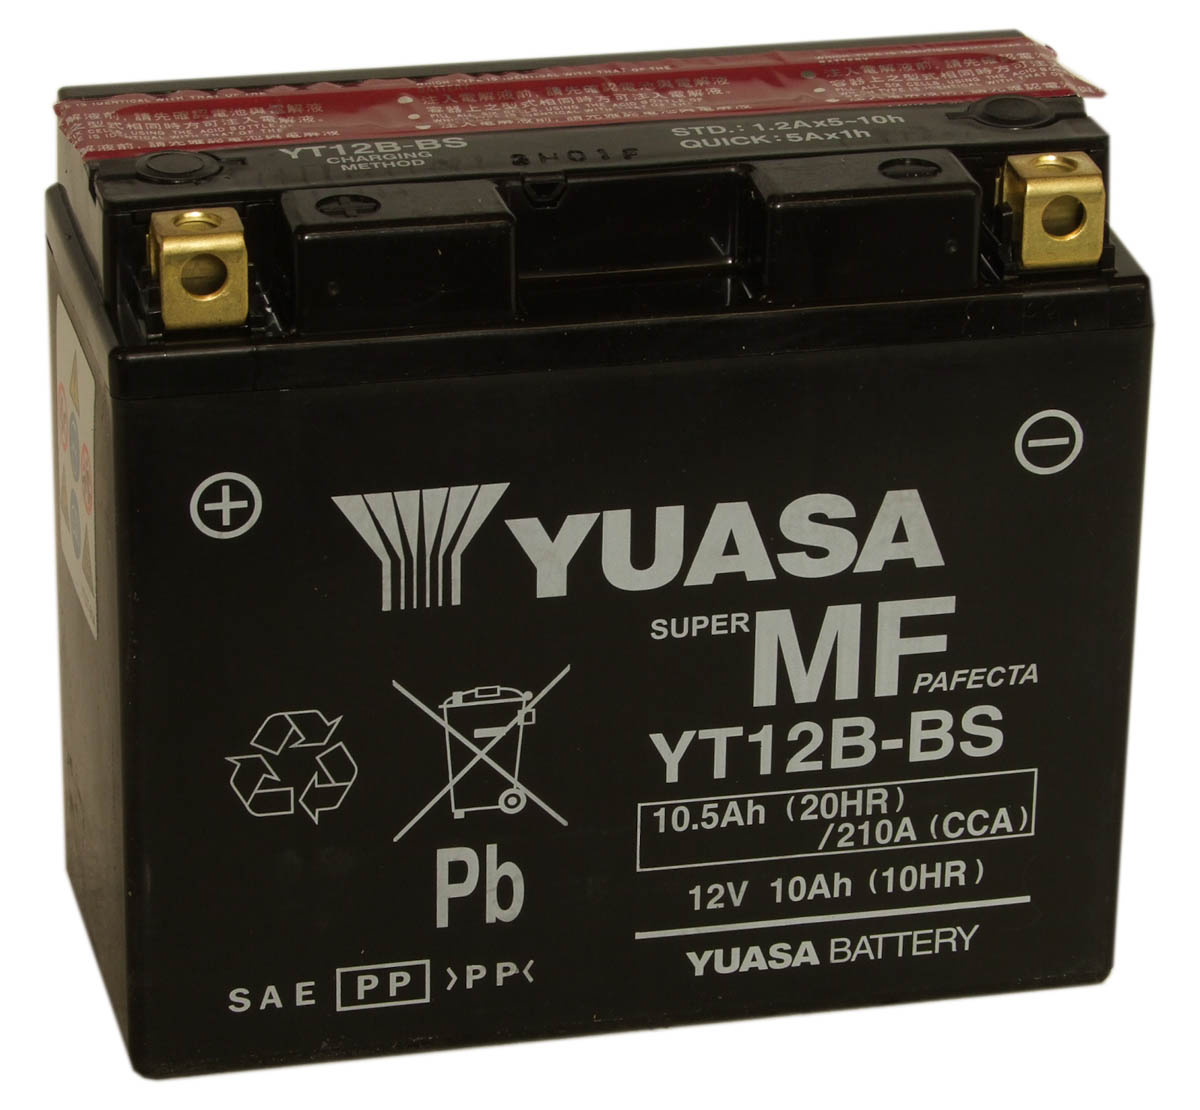 Get it delivered to your door - Yuasa YT12B-BS (Taiwan) - 1800 (EGP)